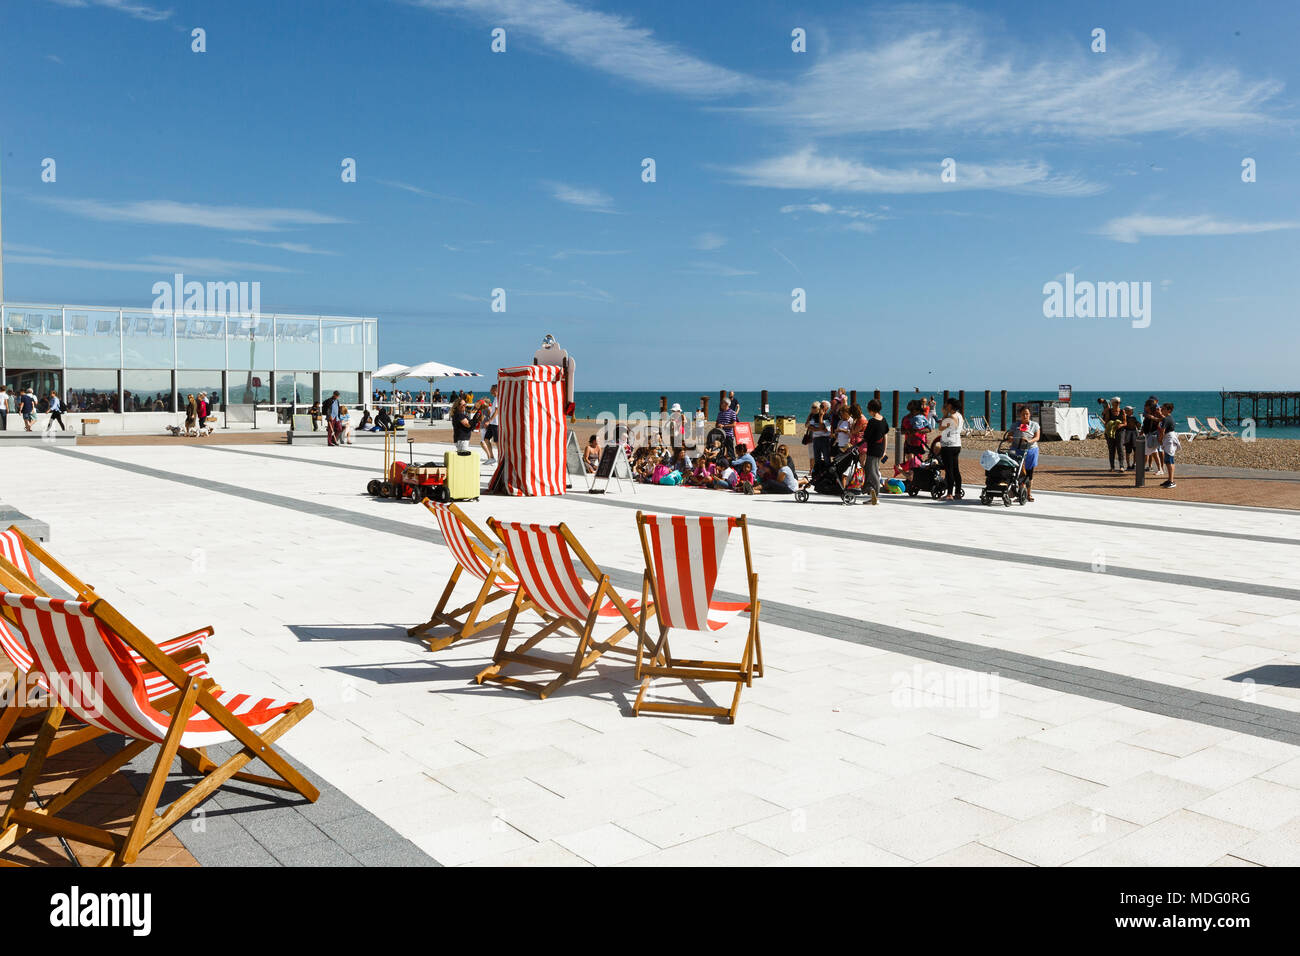 People are watching a performance of a puppet theater in Brighton, beach chairs Stock Photo